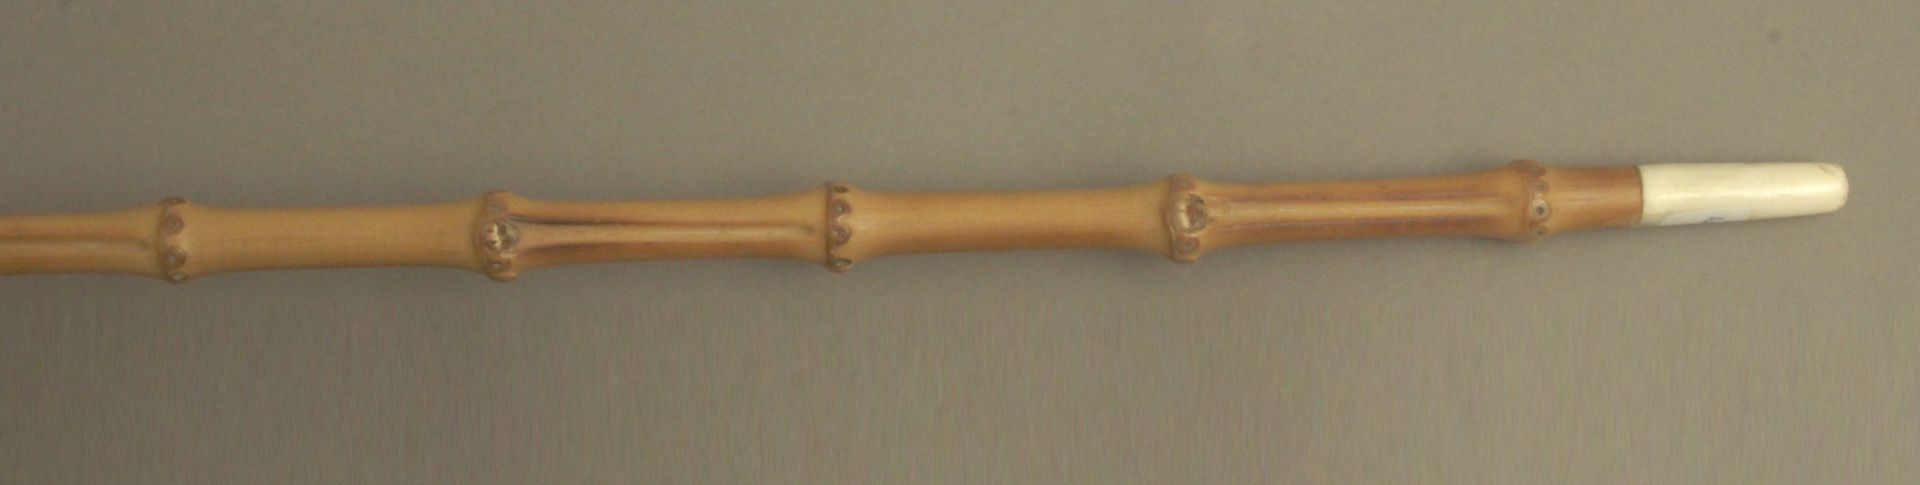 An ivory handled walking stick circa 1900 - Bild 9 aus 9